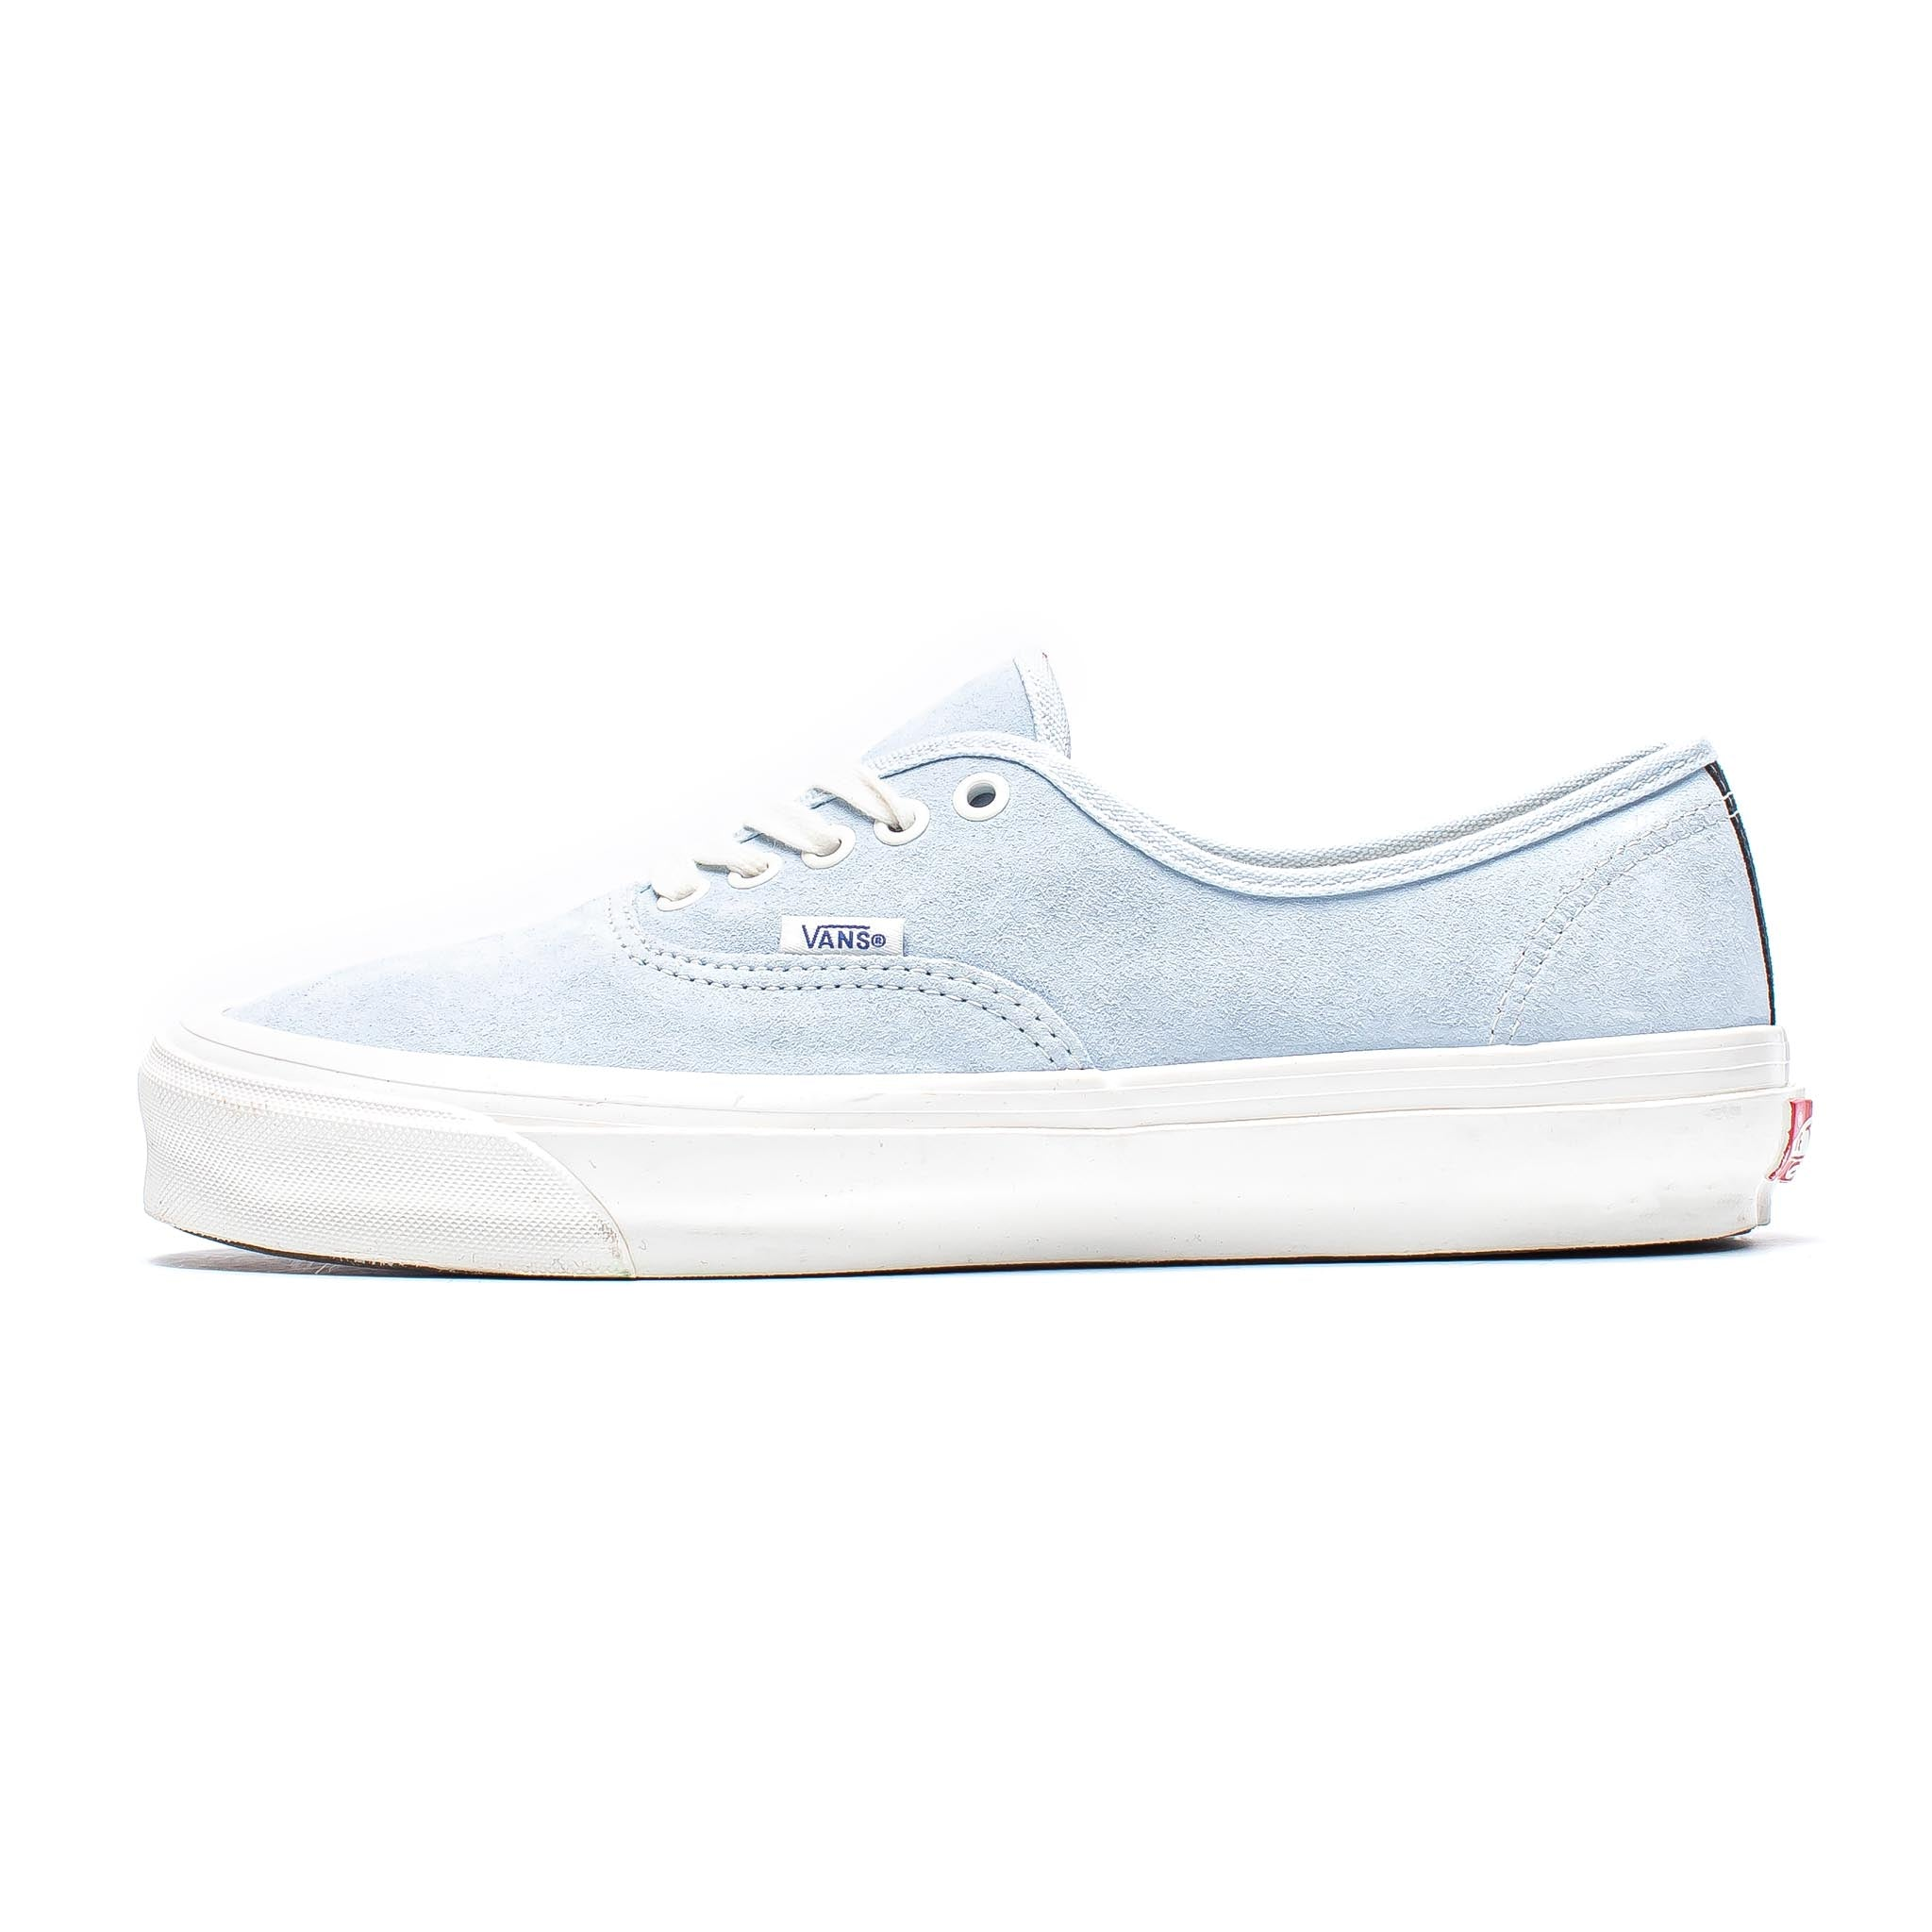 Vans Vault OG Authentic LX Ballad Blue